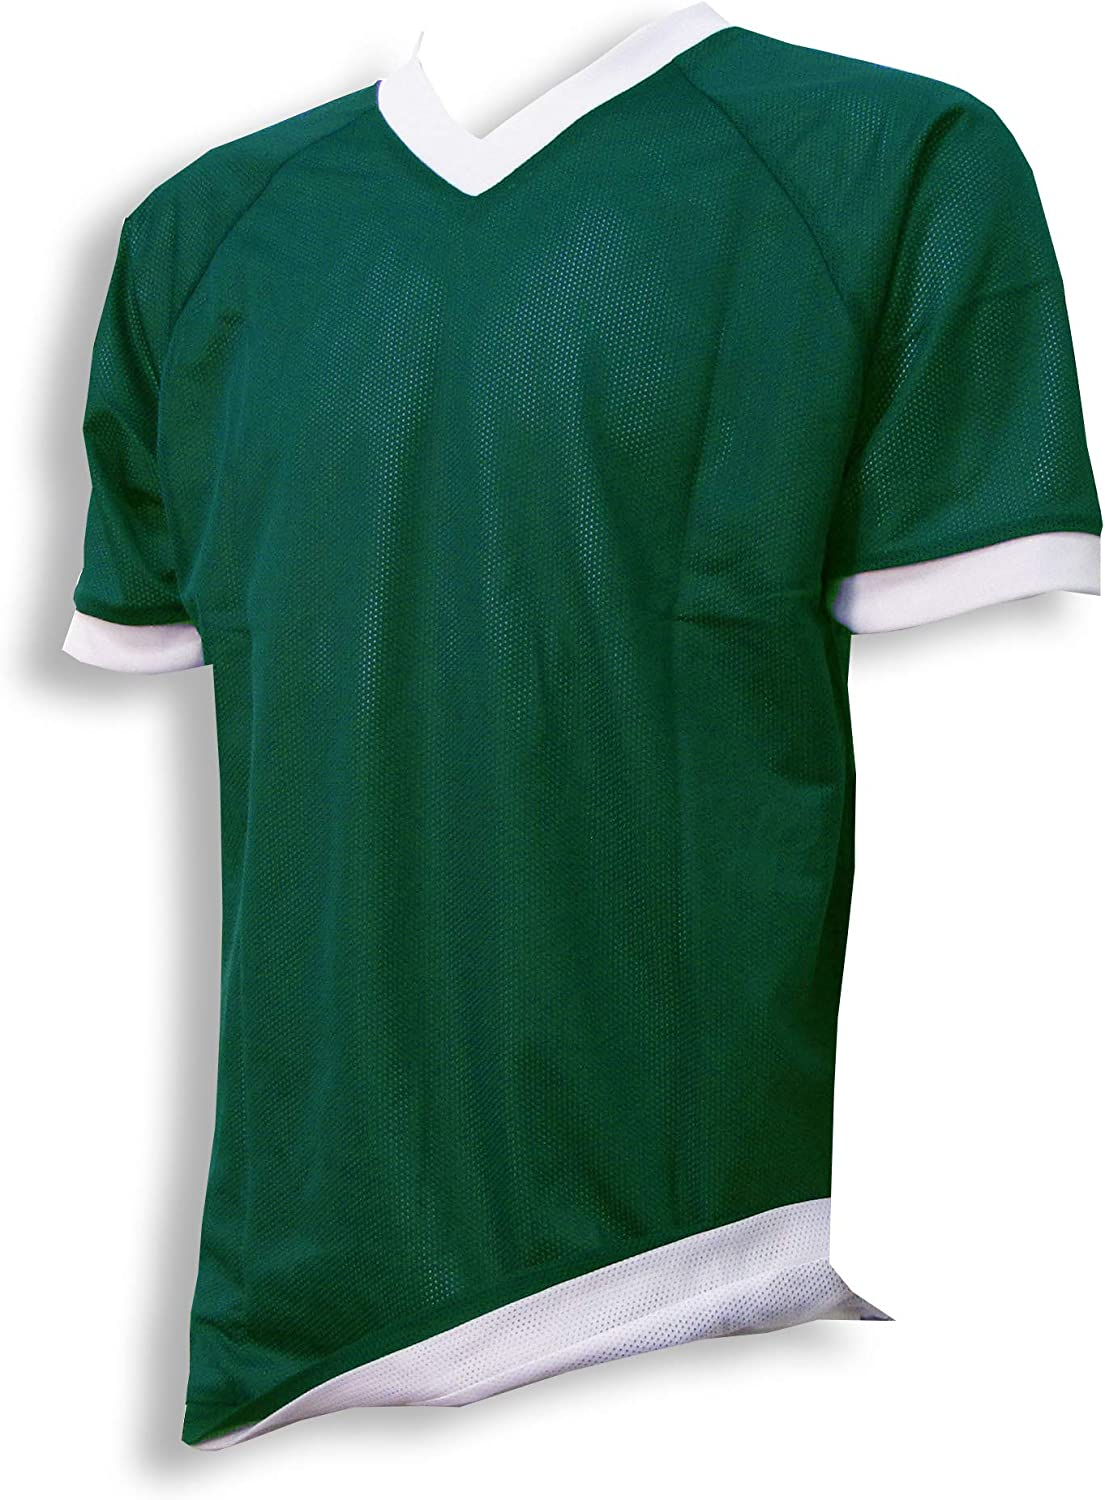 Youth and Adult Sizes Code Four Athletics Reversible Jersey for Flag Football and Soccer